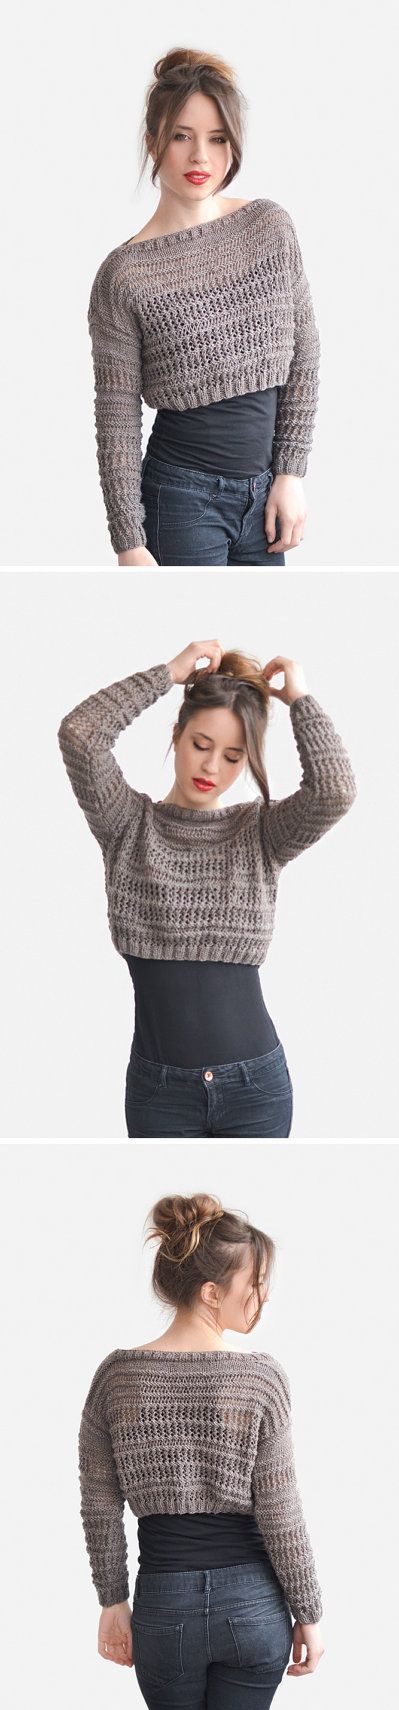 Crop Top Sweater in Light Brown, Hand Knit Short Top, Boat Neck ...